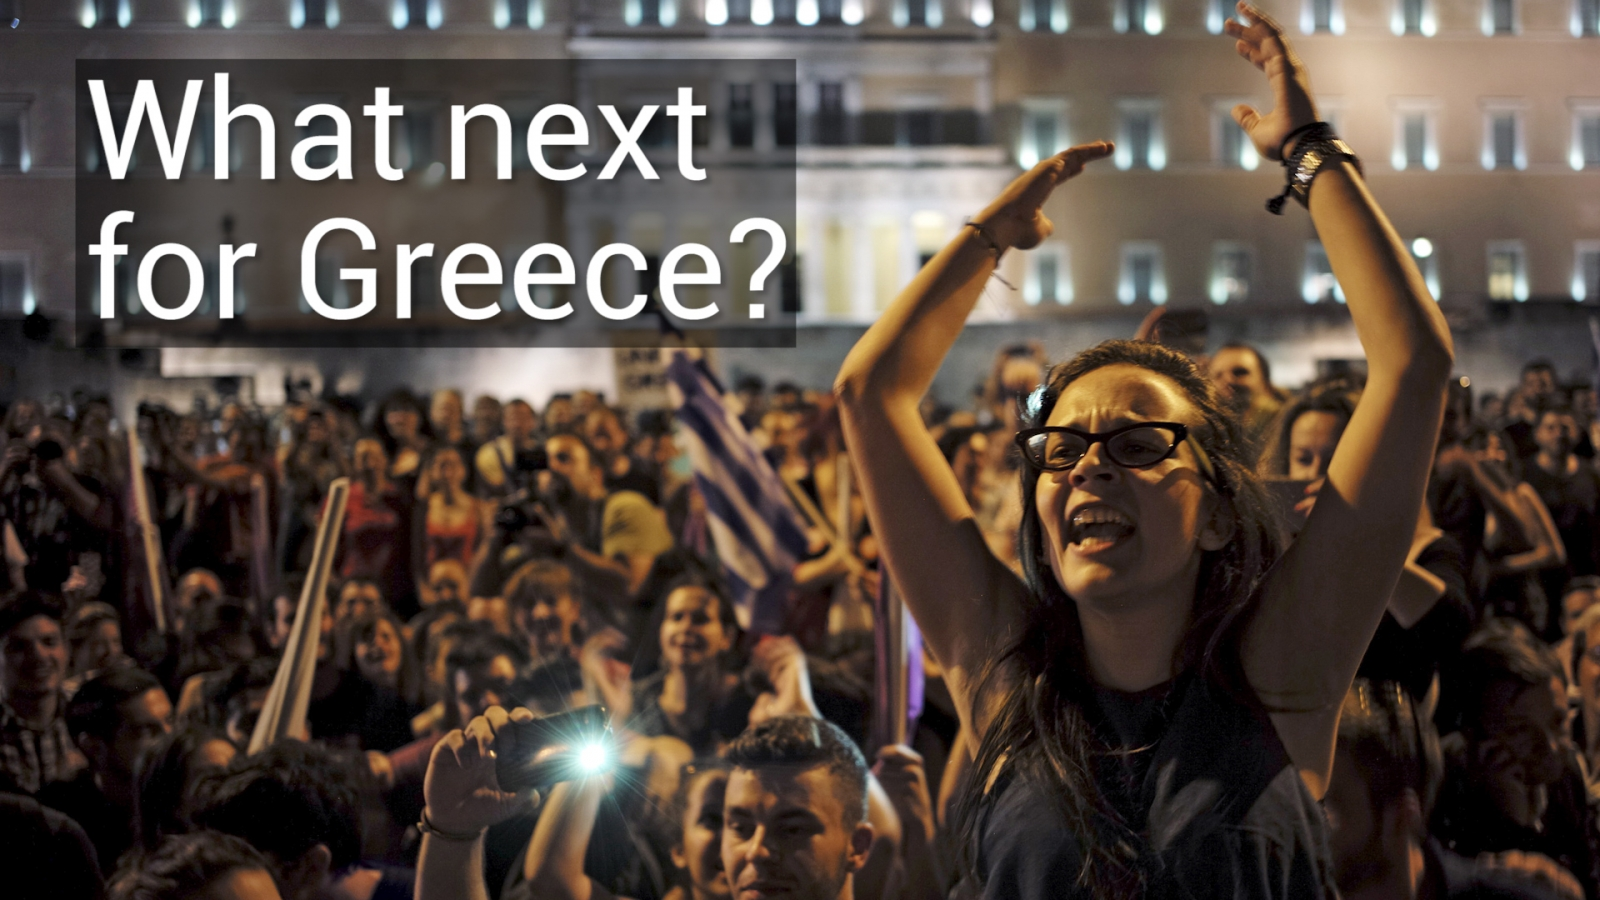 What next for Greece?